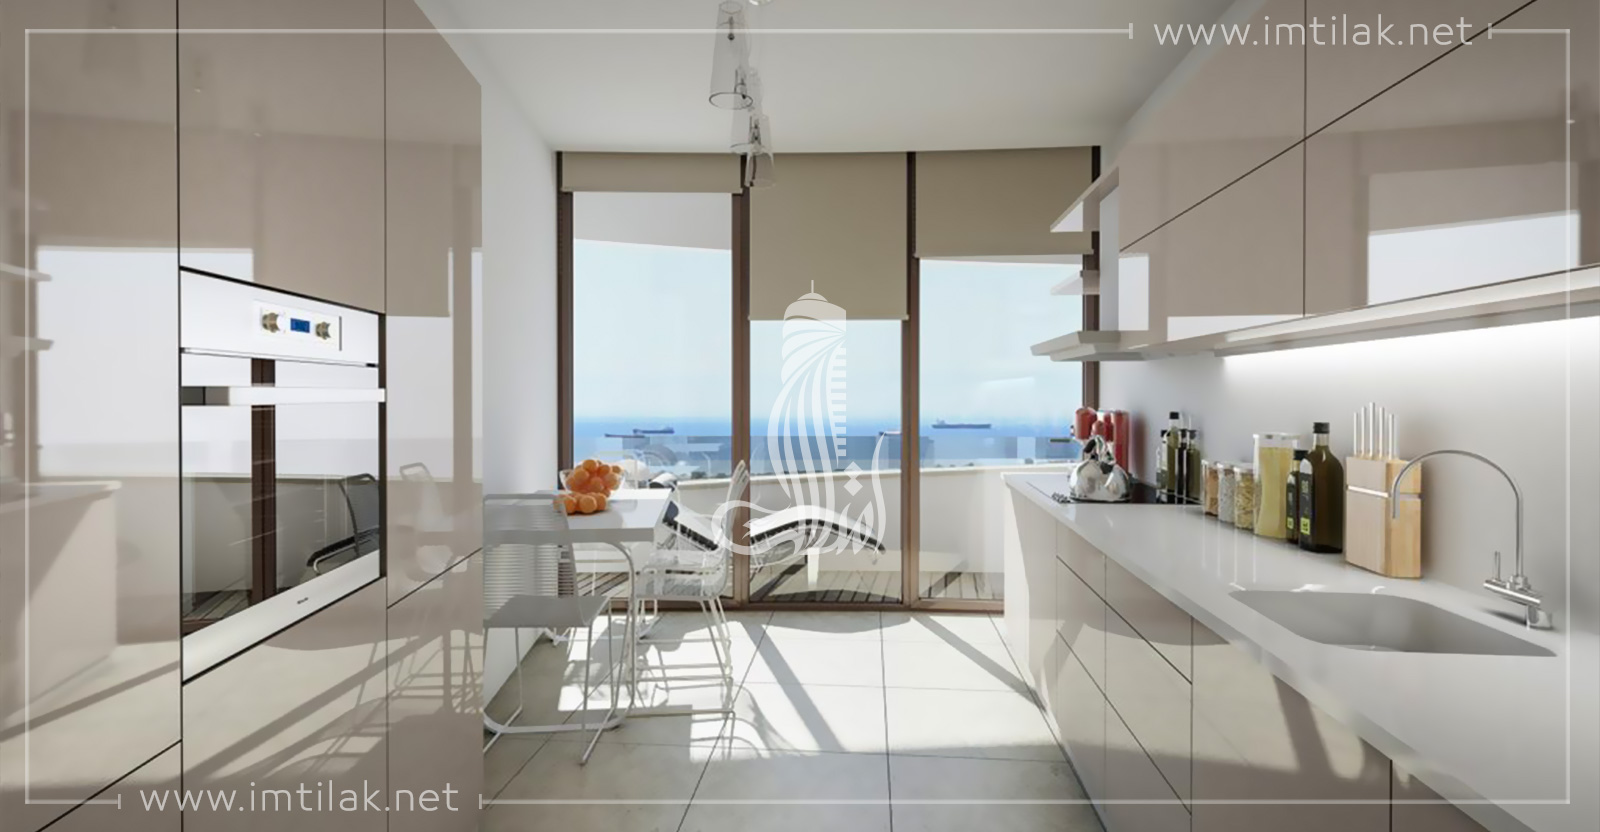 Property For Sale In Istanbul Turkey - Selenium of Istanbul IMT - 230